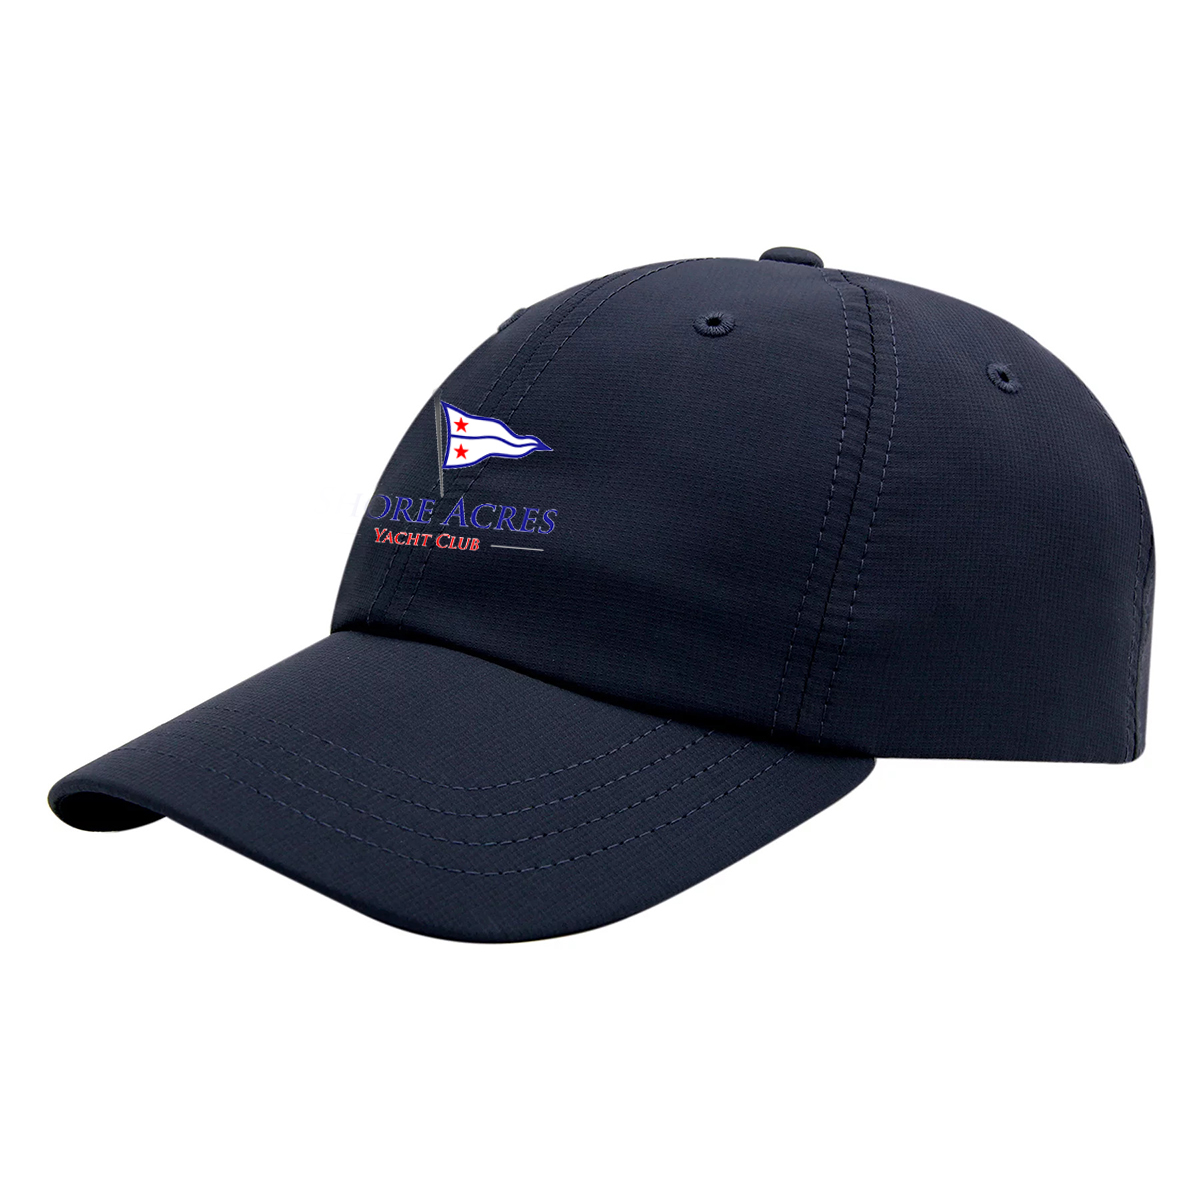 SHORE ACRES YC - OURAY PERFORMANCE CAP